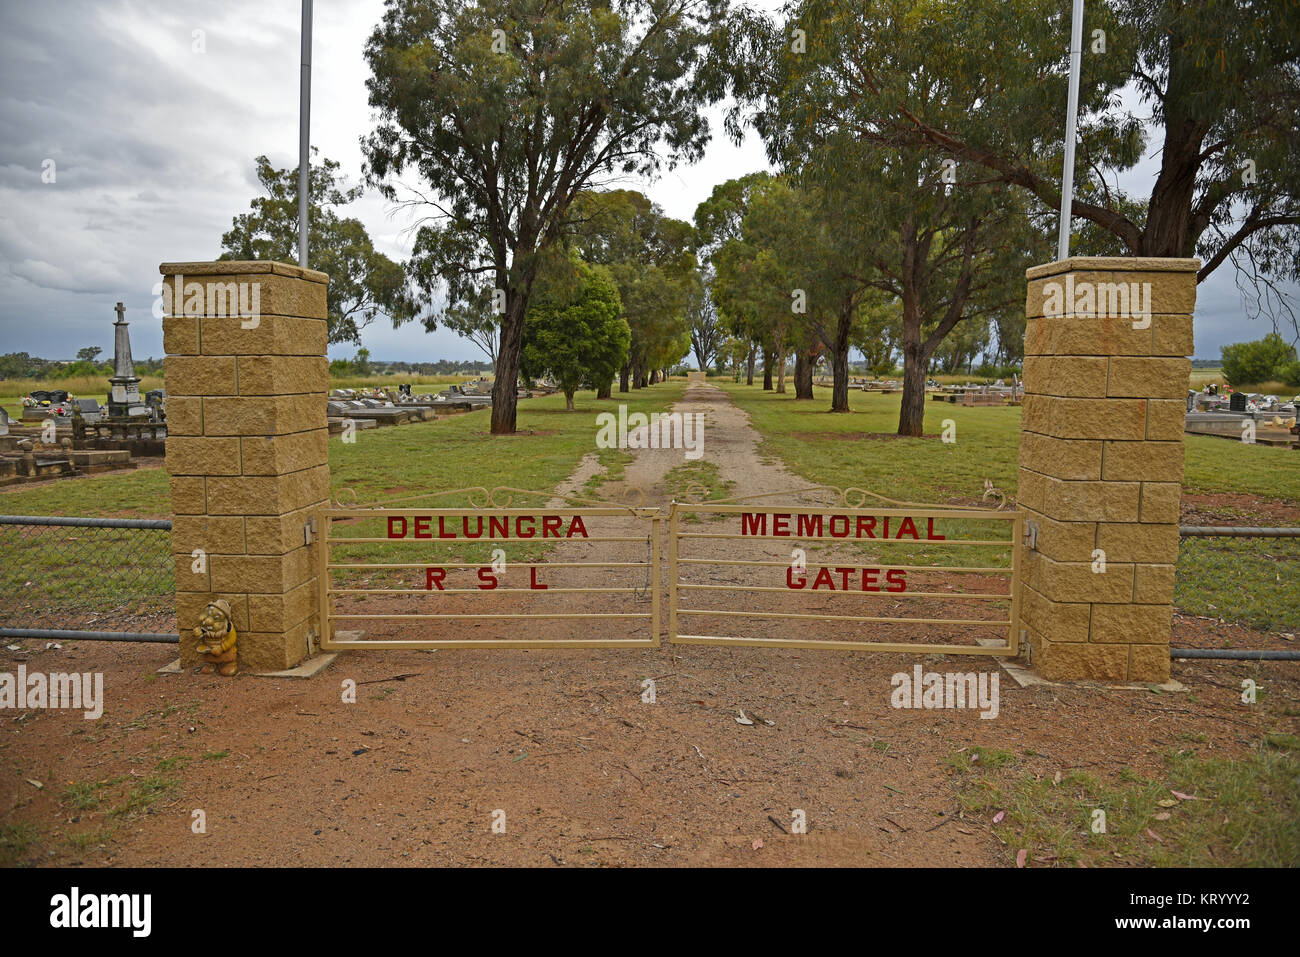 entrance gates to the Delungra RSL and memorial gates in new south wales, australia - Stock Image